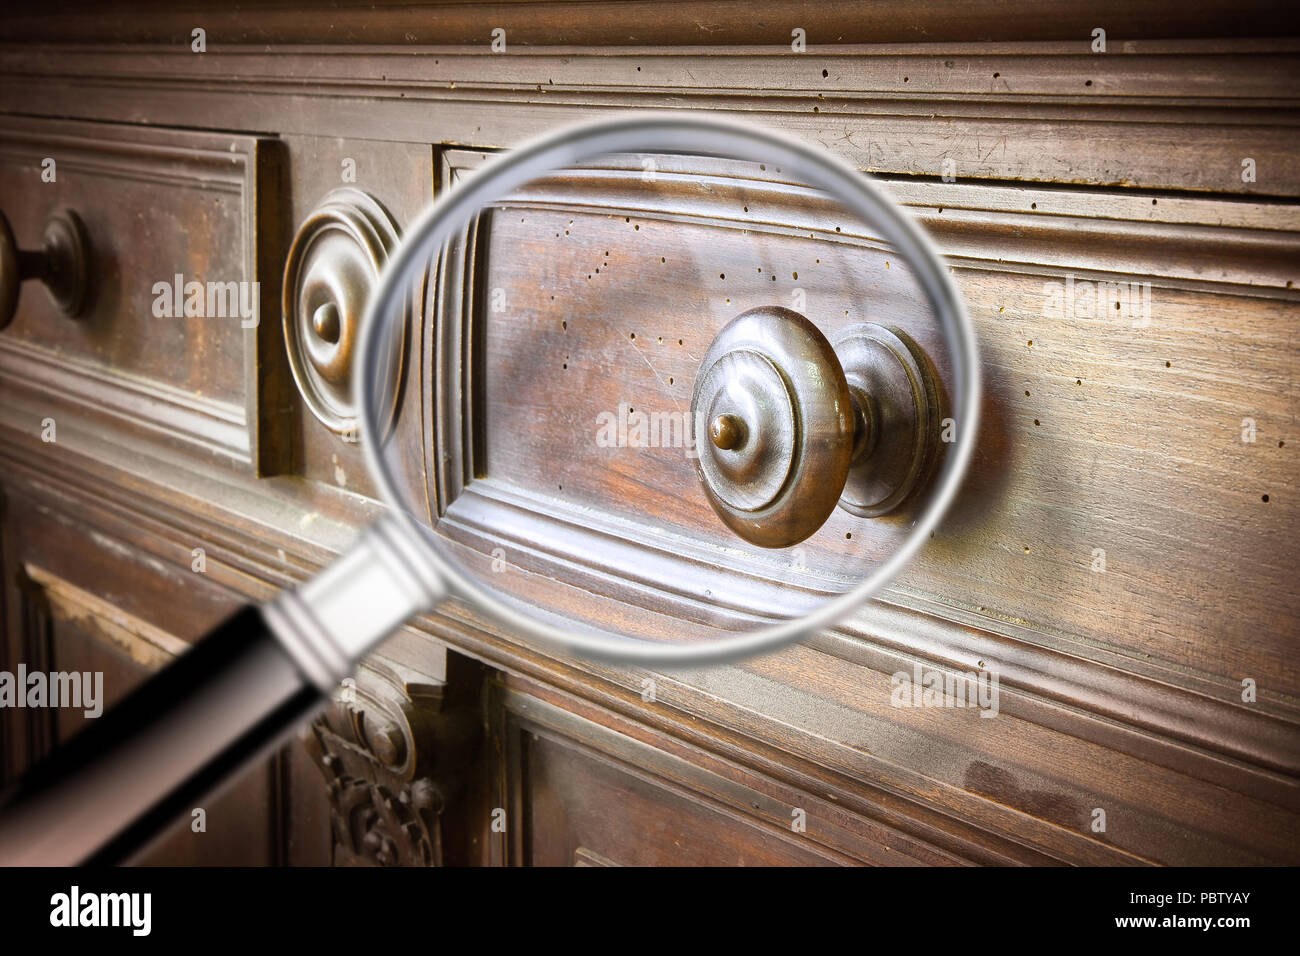 Detail of an antique wooden italian furniture just restored with a  magnifying glass on foreground looking - Woodworm Stock Photos & Woodworm Stock Images - Alamy